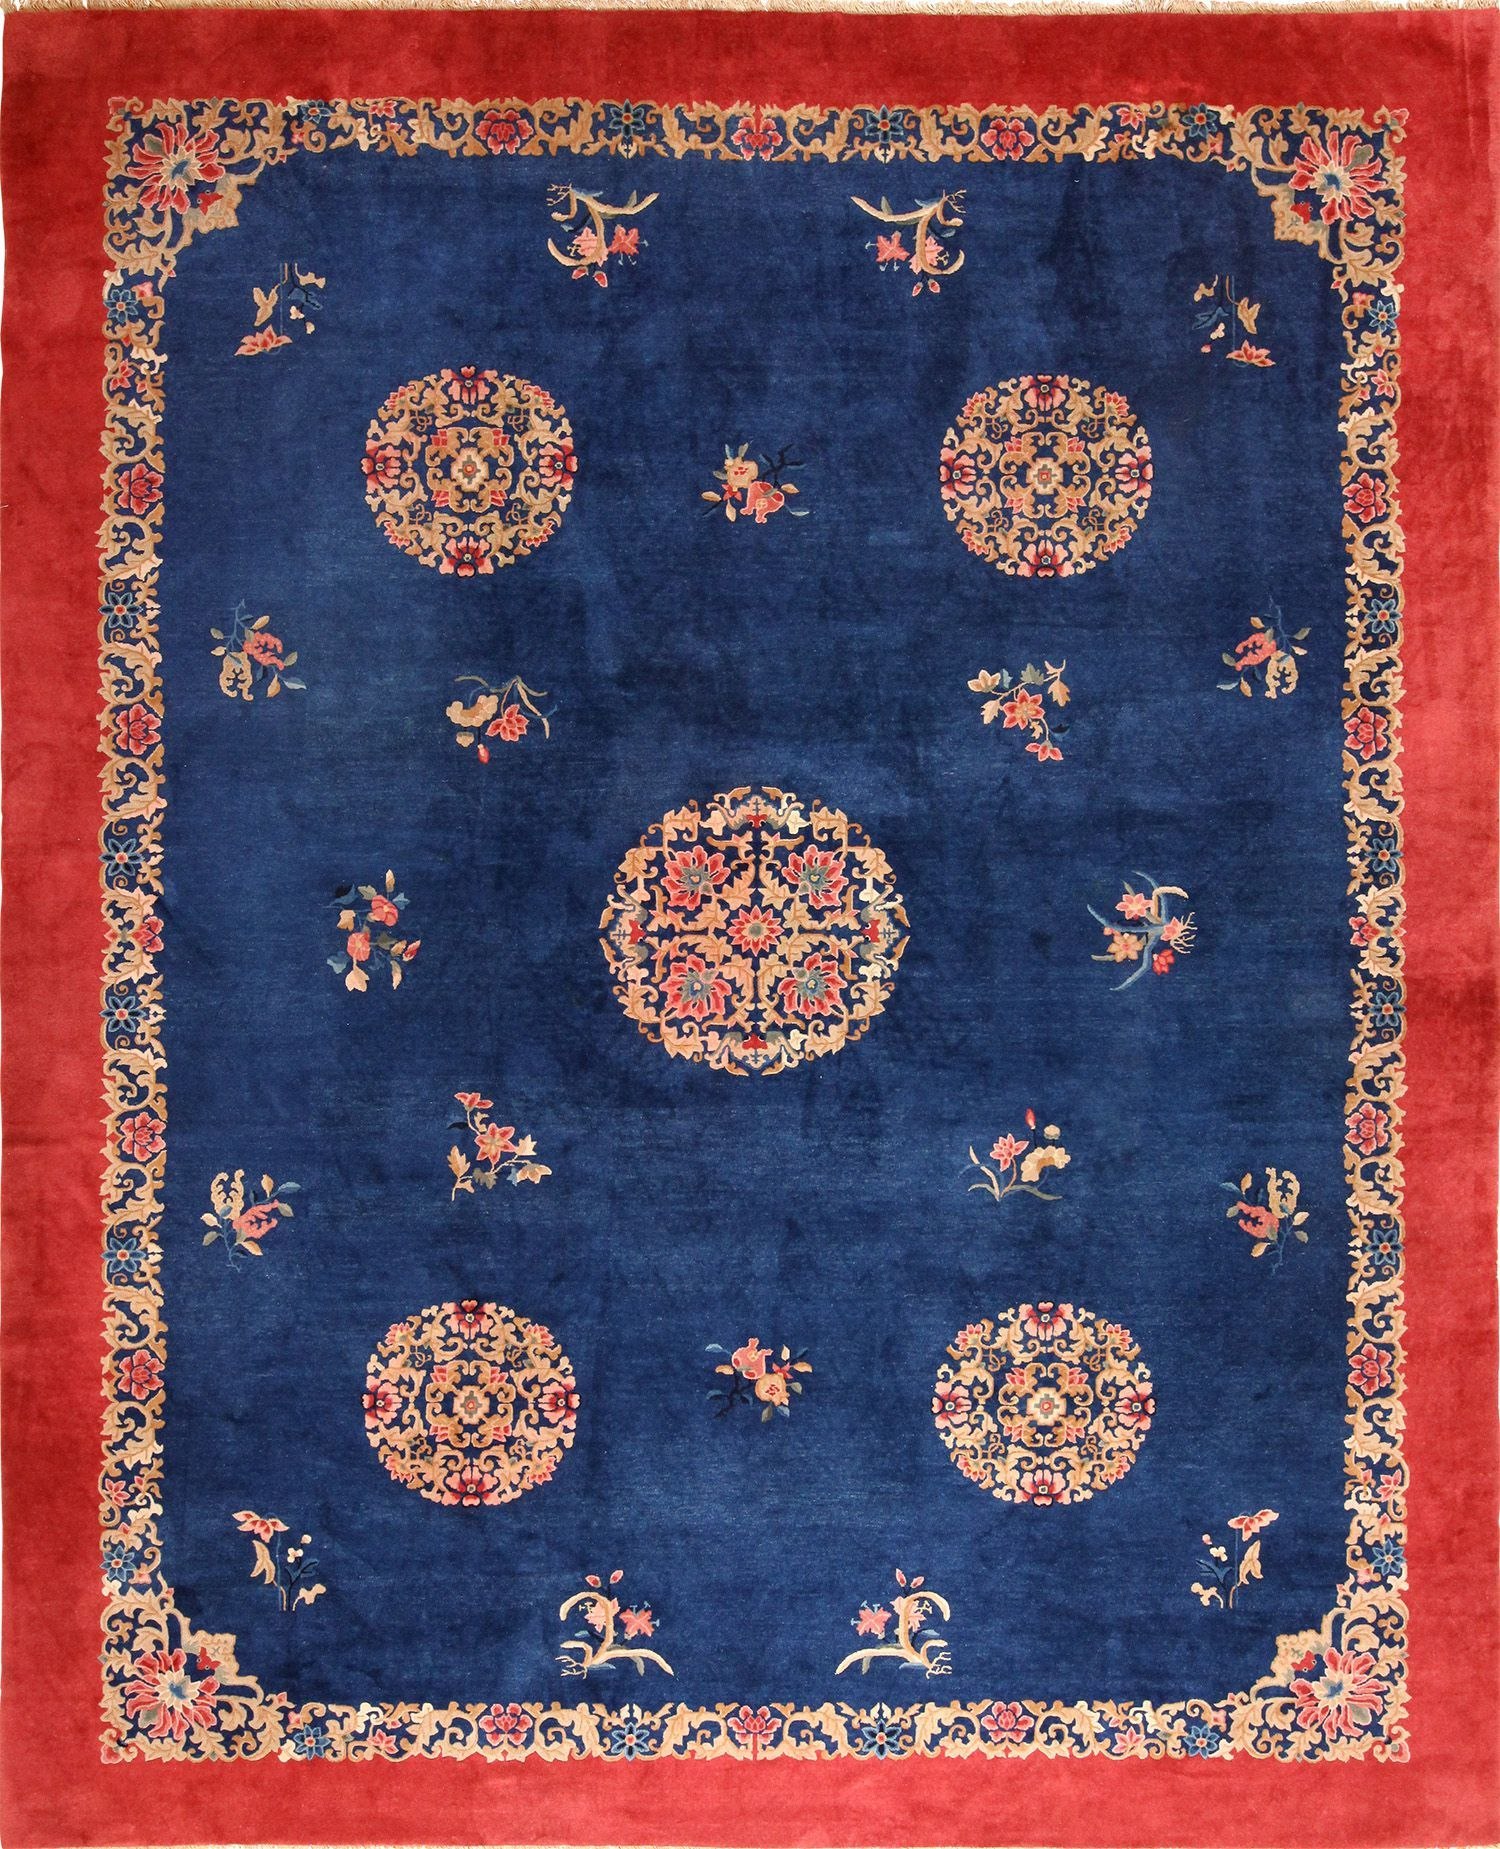 Blue And White Chinese Rugs: Beautiful Antique Blue Chinese Rug 49243 By Nazmiyal